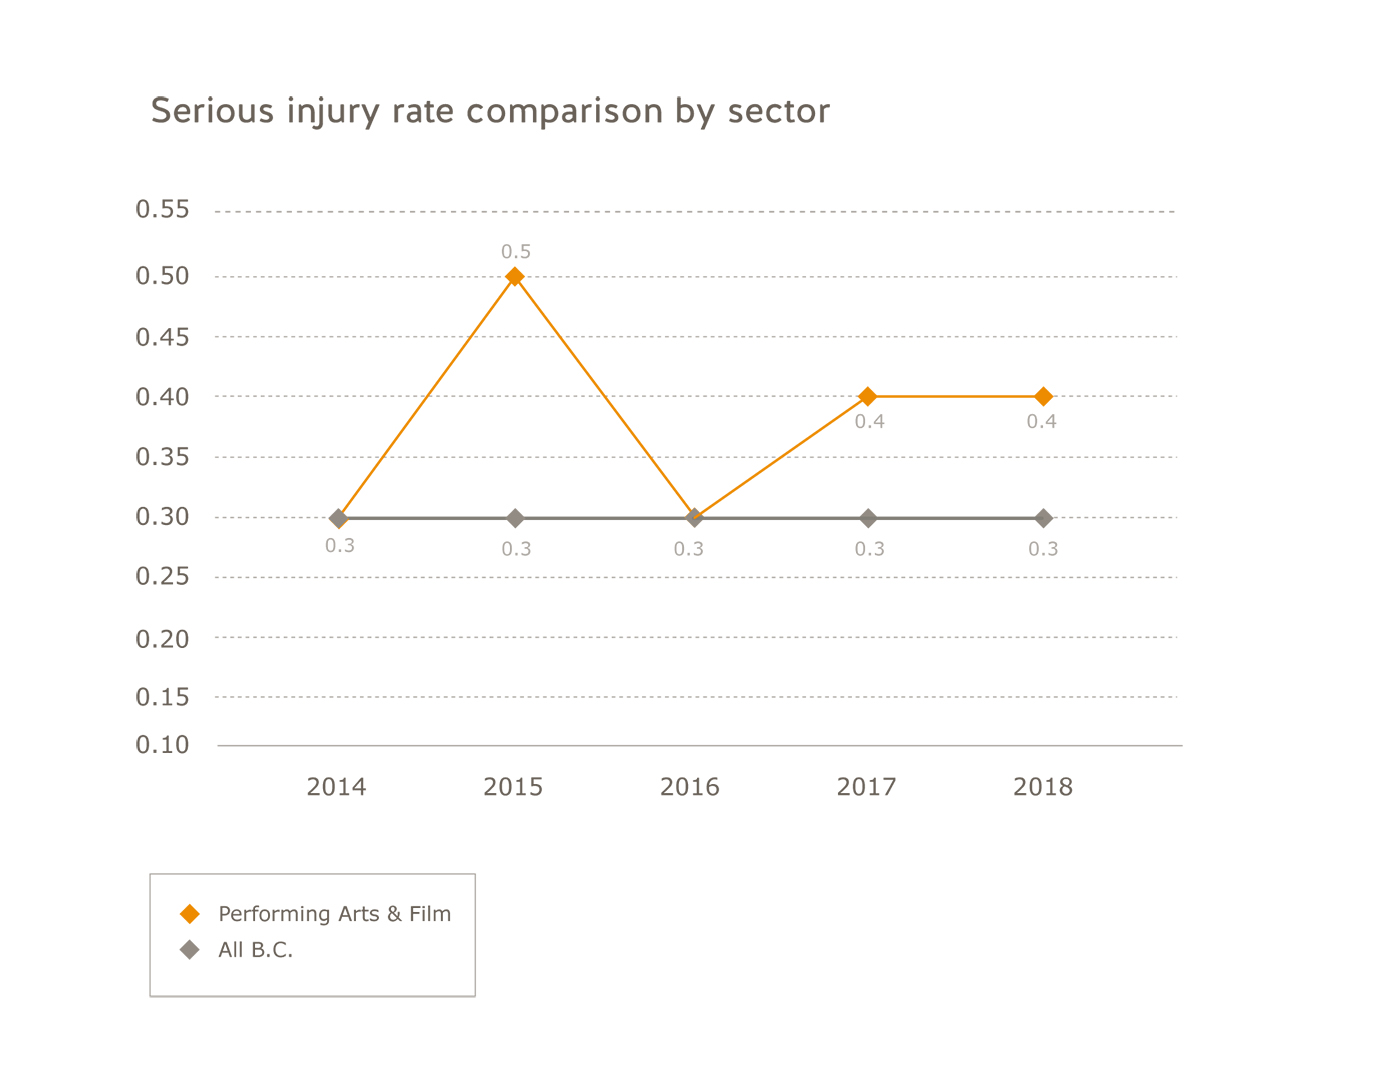 Performing arts industry serious injury rate comparison by sector for 2014 to 2018: Performing arts and film: 2014=0.3; 2015=0.5; 2016=0.3; 2017=0.4; 2018=0.4. All B.C.: 2014=0.3; 2015=0.3; 2016=0.3; 2017=0.3; 2018=0.3